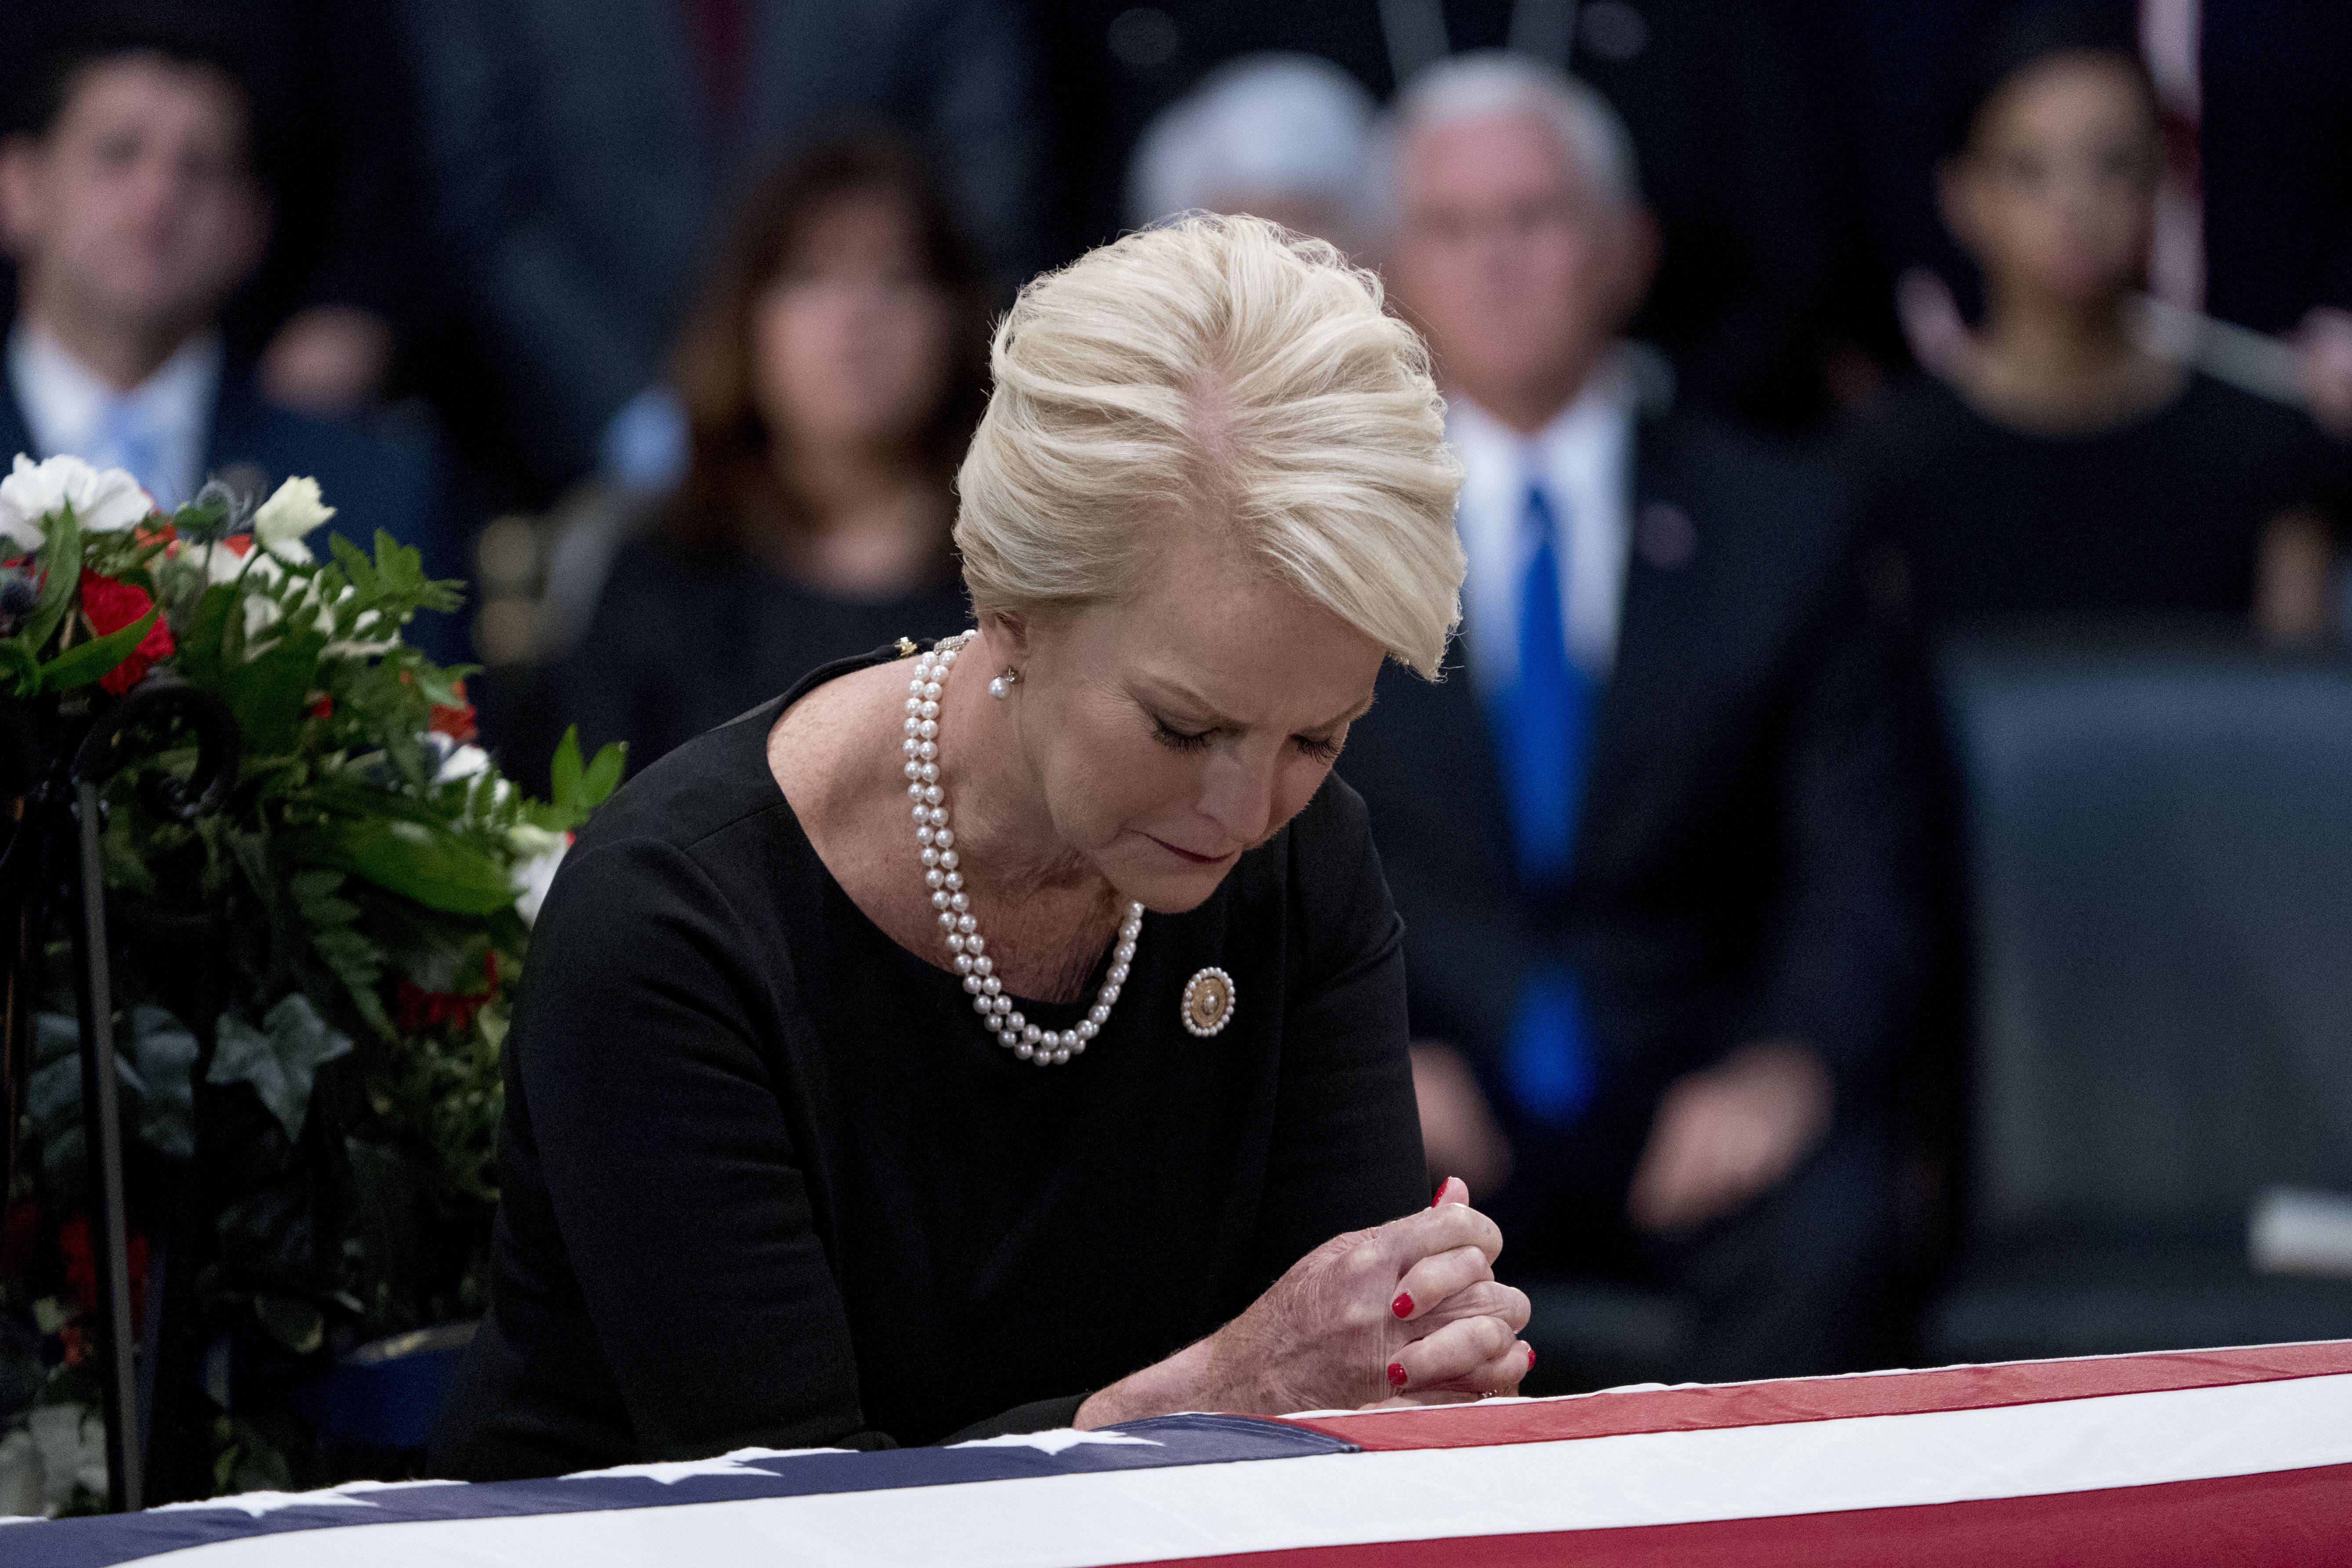 Cindy McCain leaning on John McCain's casket as he lies in state in the Rotunda of the U.S. Capitol, on August 31, 2018 in Washington, DC | Photo: Getty Images